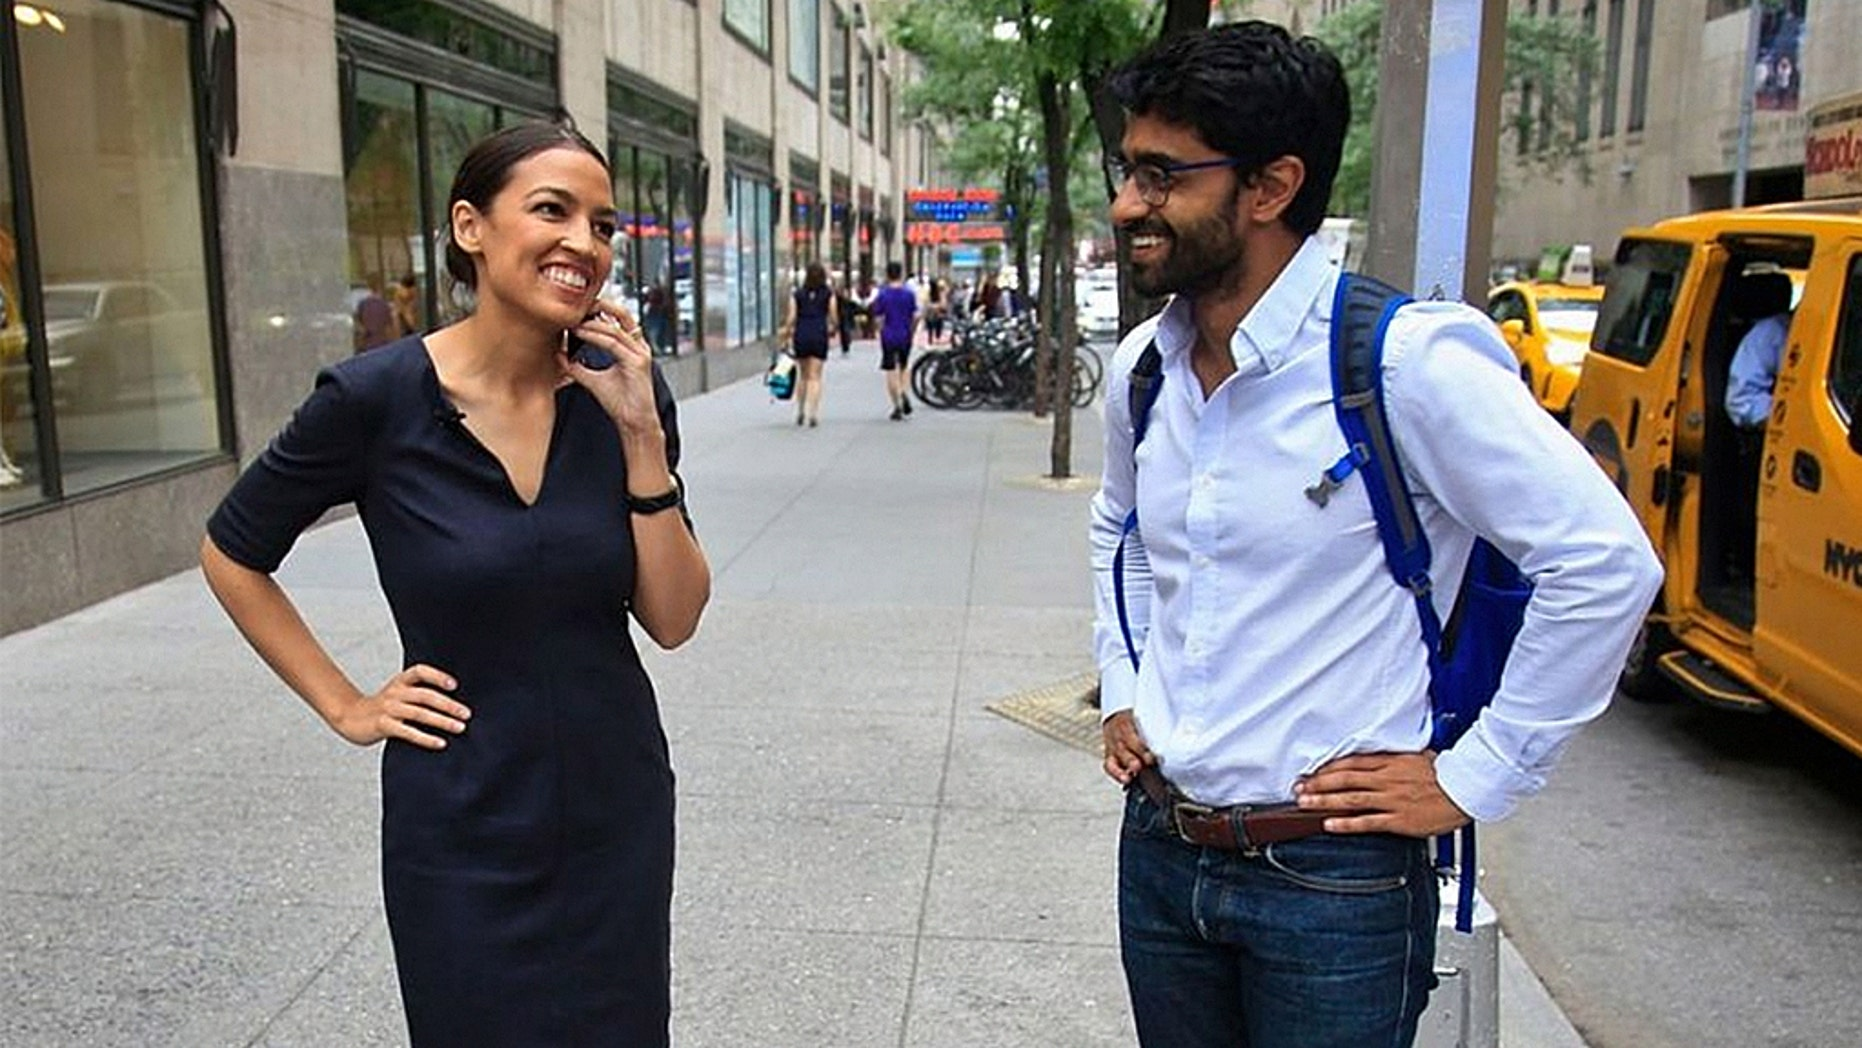 Westlake Legal Group Saikat-Chakrabarti-AP Ocasio-Cortez's right-hand man mocked for supporting Bernie Sanders' idea to allow felons to vote Lukas Mikelionis fox-news/politics/elections/house-of-representatives fox-news/politics/2020-presidential-election fox-news/person/bernie-sanders fox-news/person/alexandria-ocasio-cortez fox news fnc/politics fnc article 0dd435fb-7550-56bb-a2ef-620ec03be997